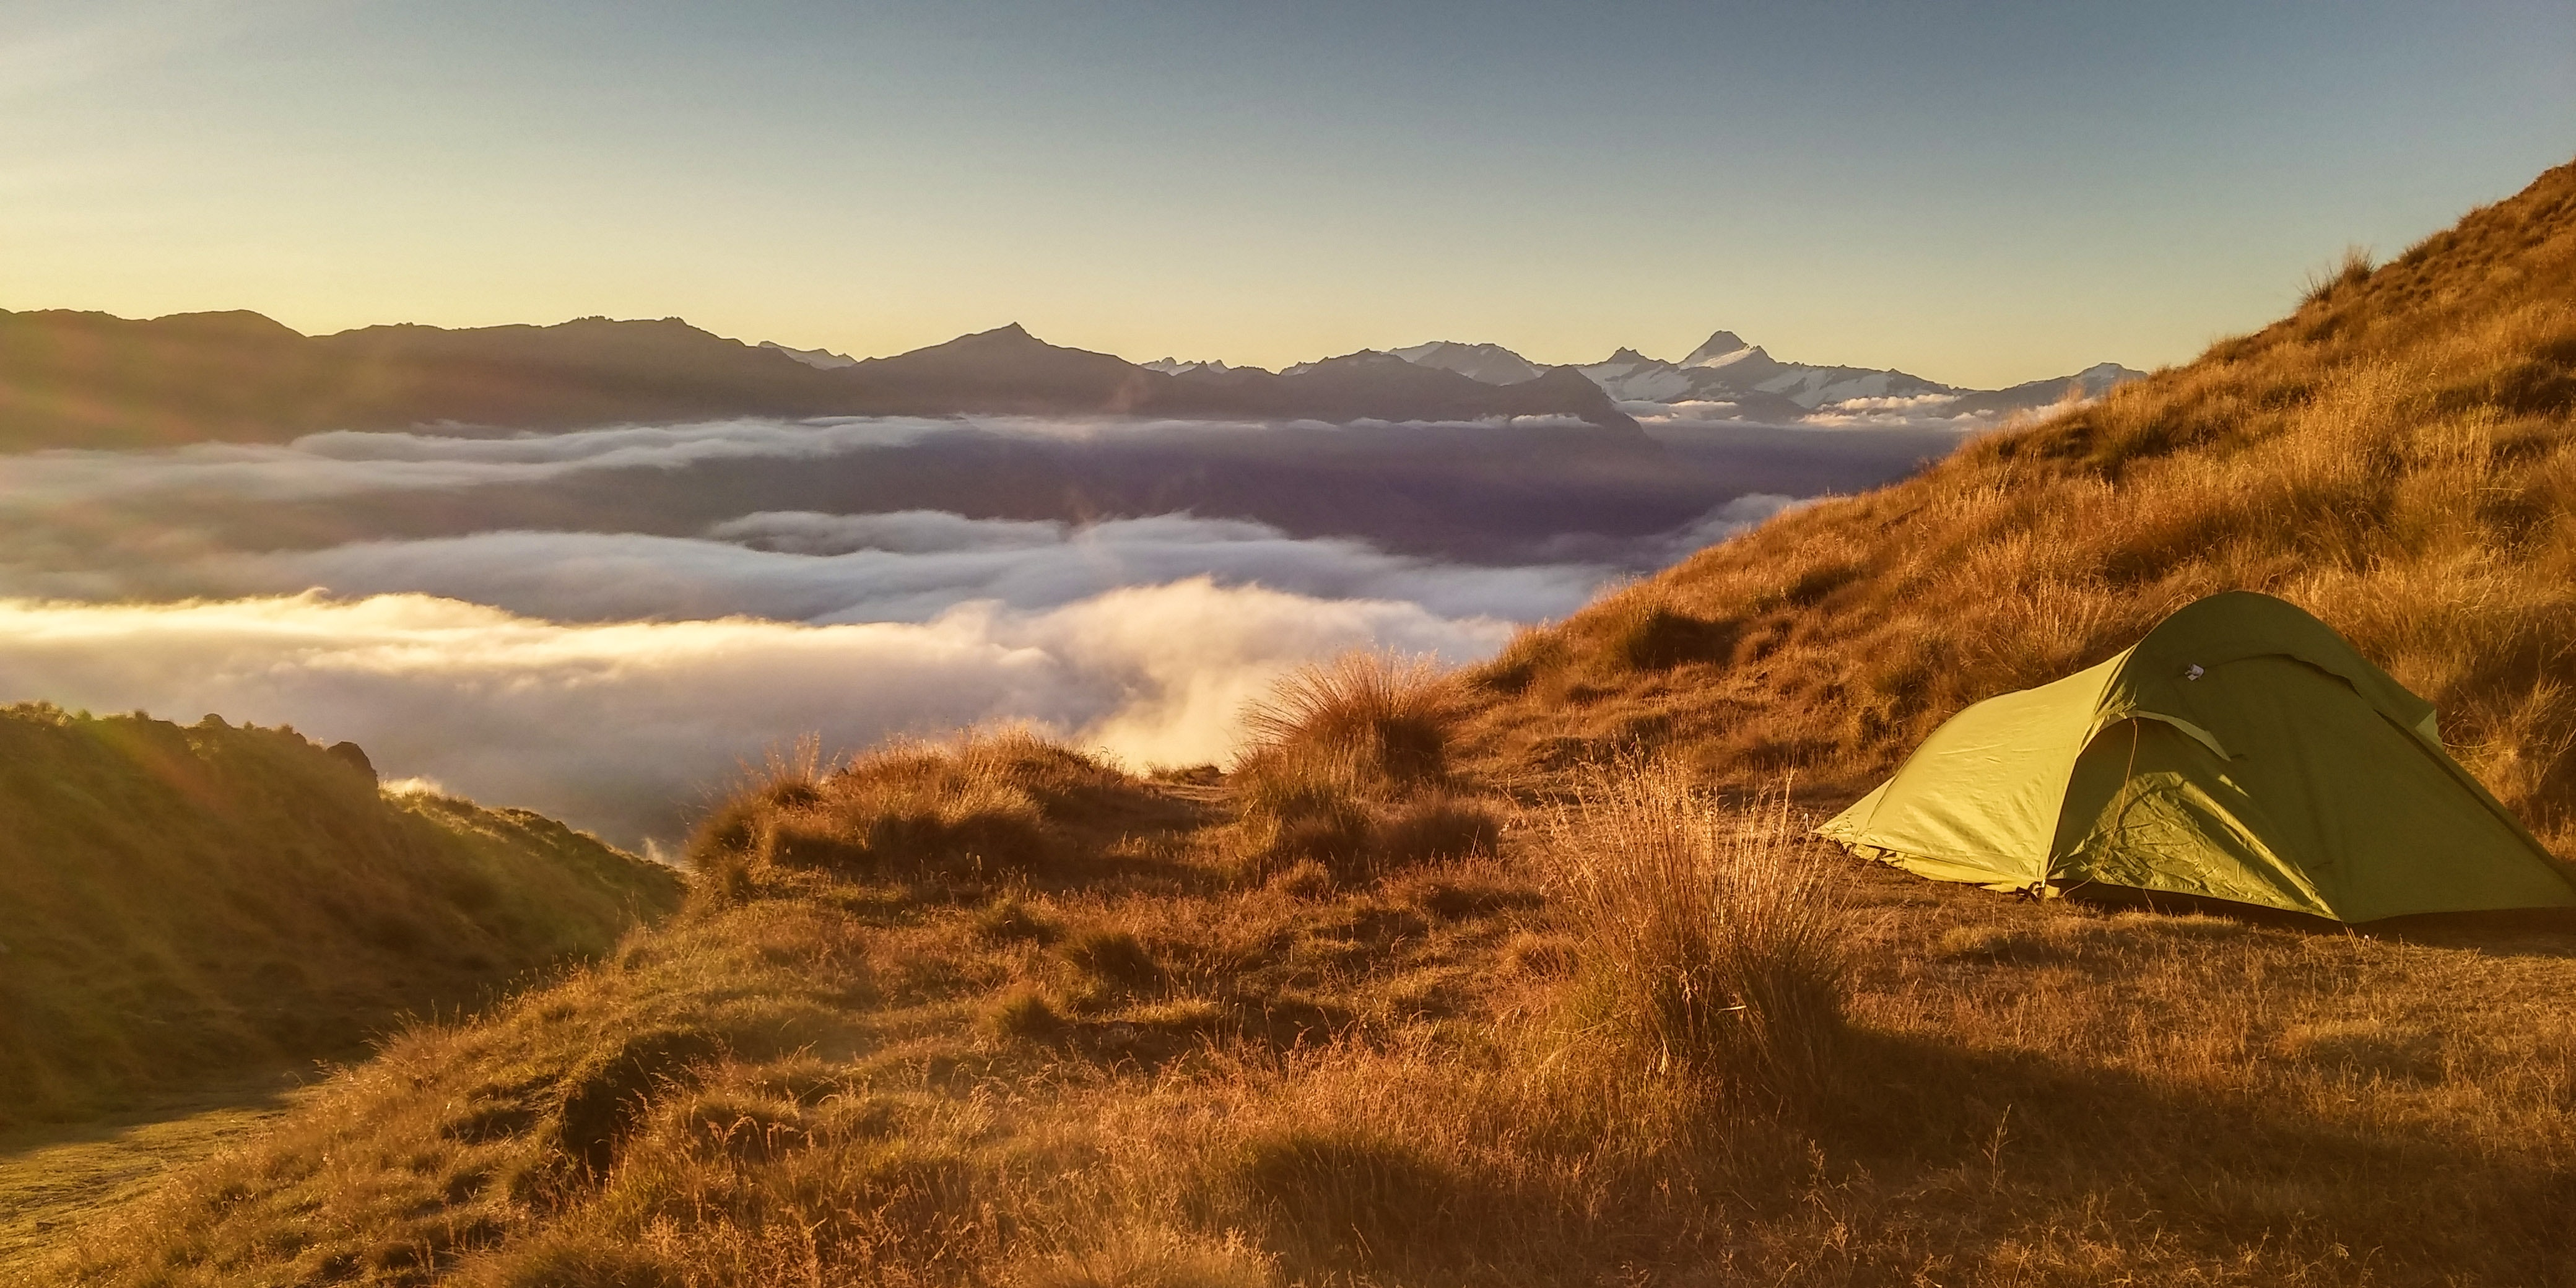 Green Tent On Top Of Mountain, Camping, Landscape, Summit, Sea of clouds, HQ Photo